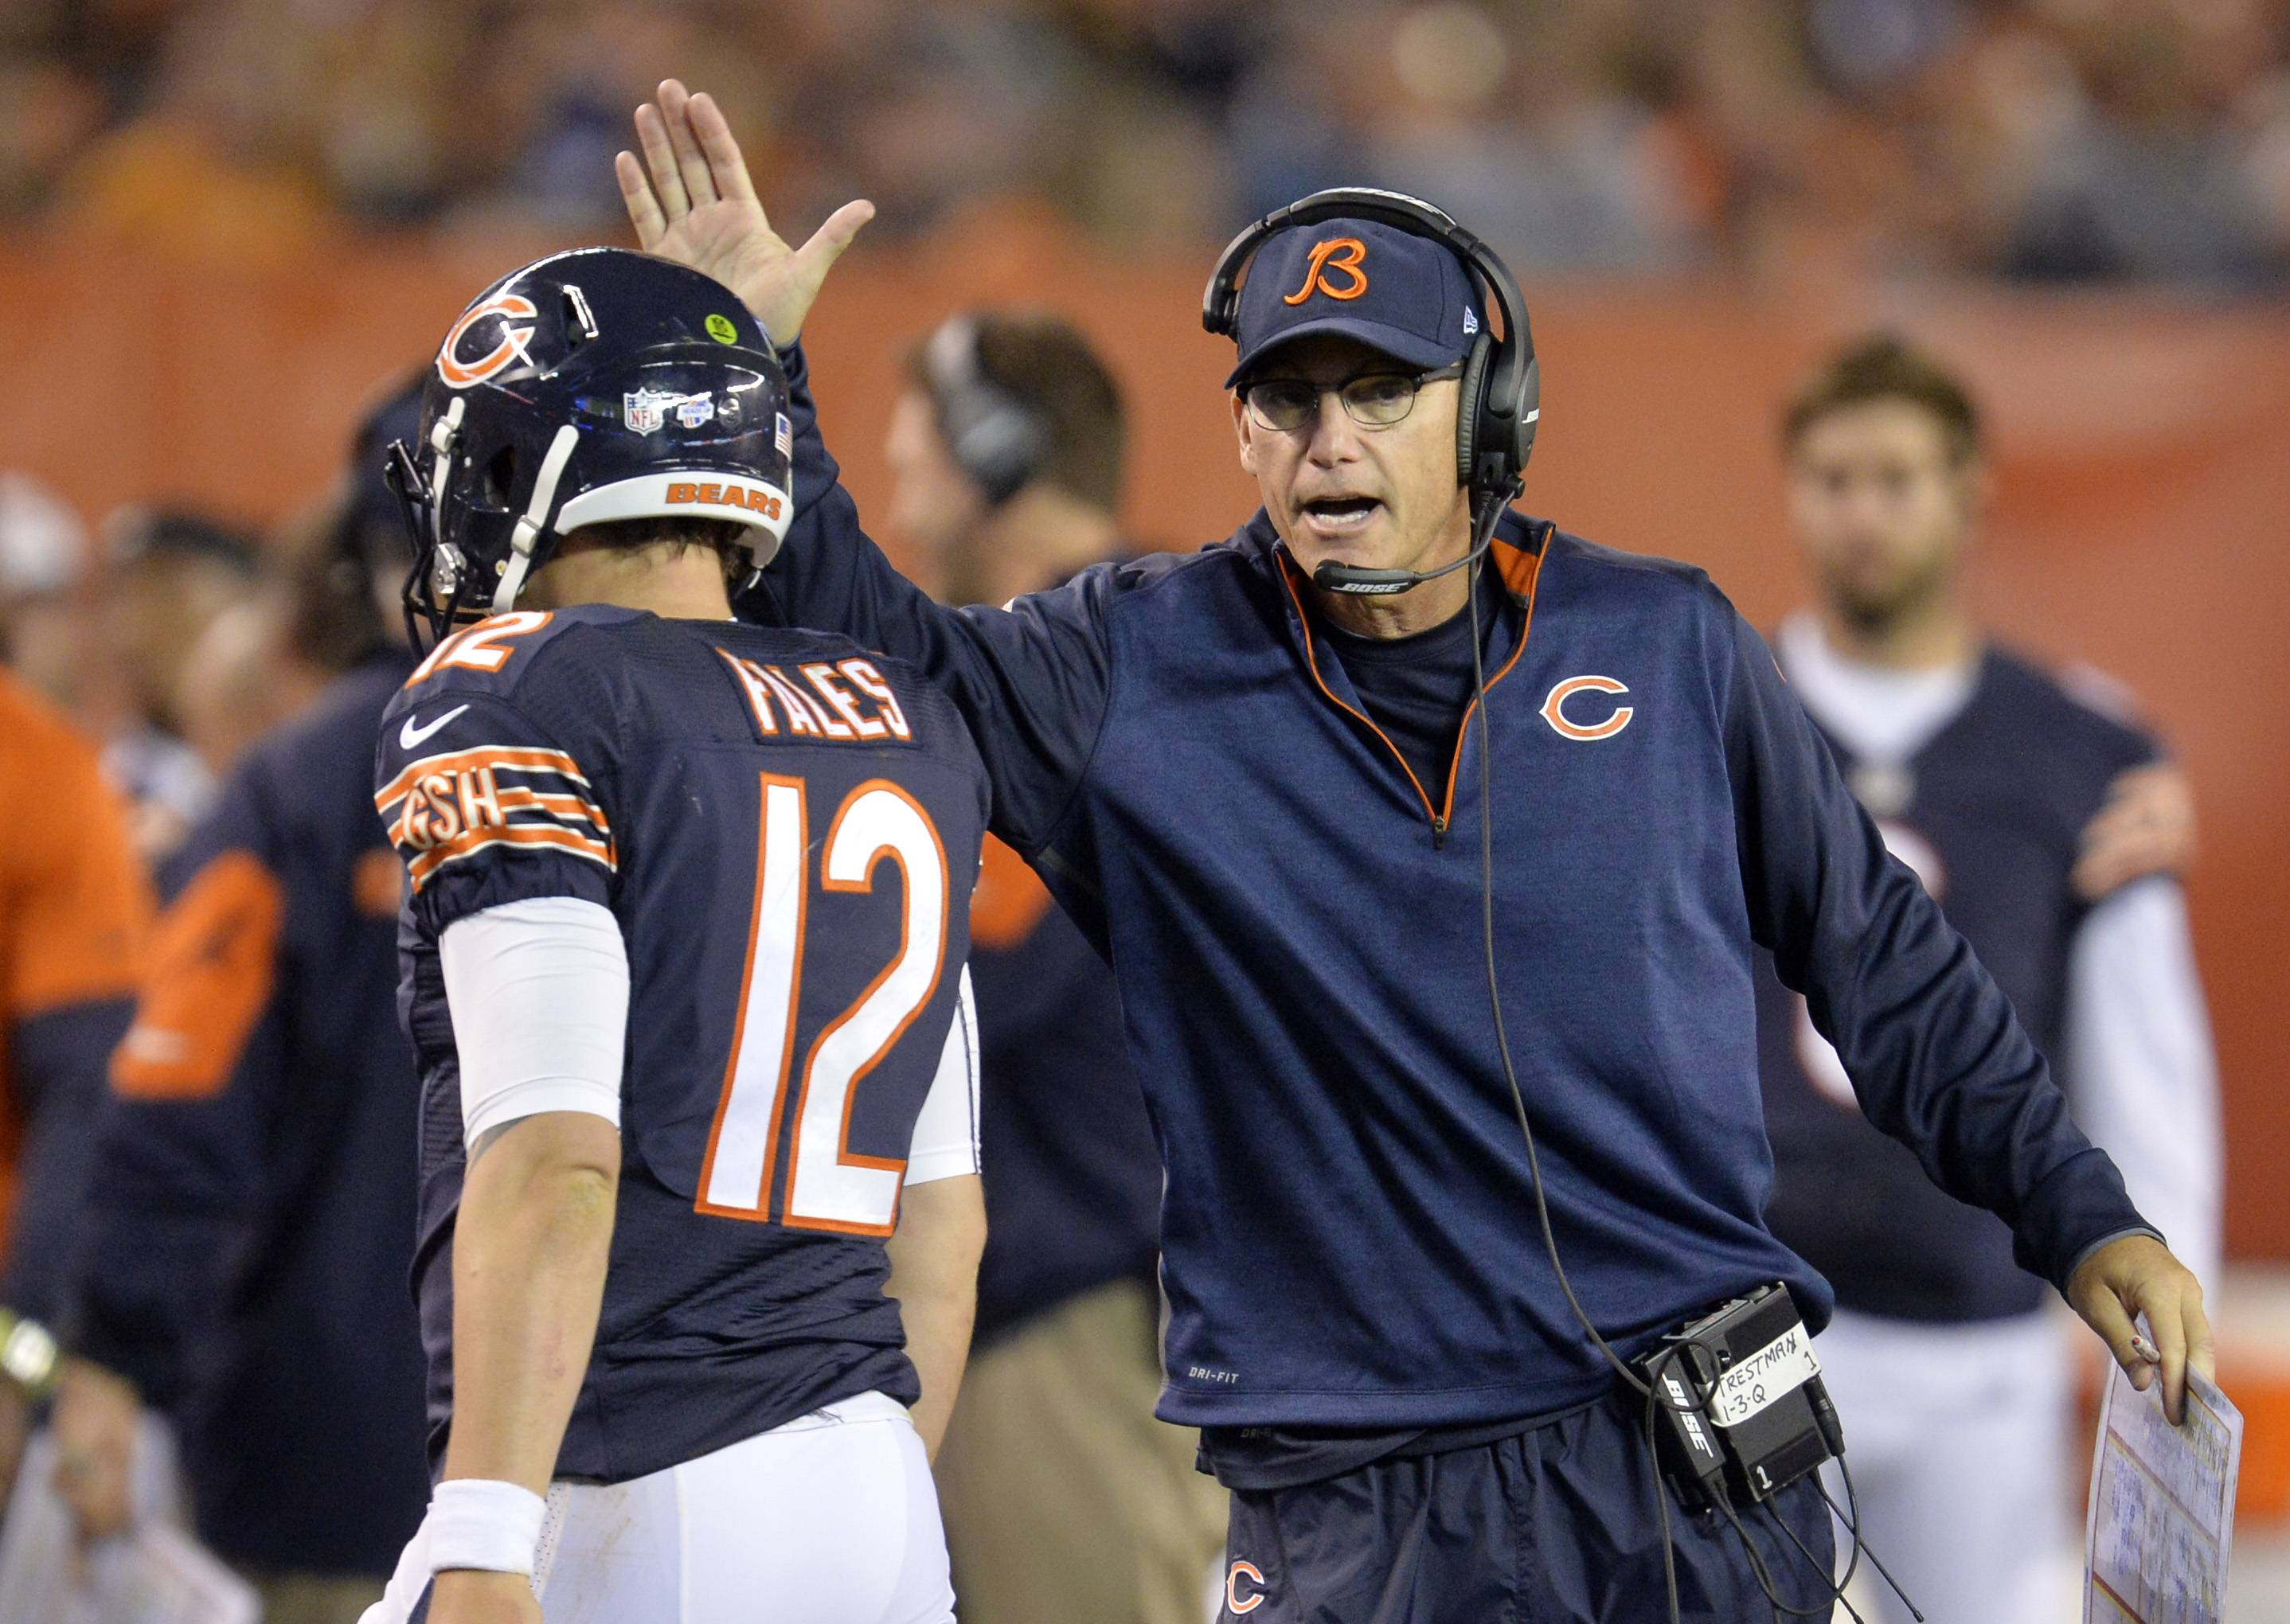 Coach Marc Trestman and the Bears open the season Sunday at home against the Buffalo Bills.